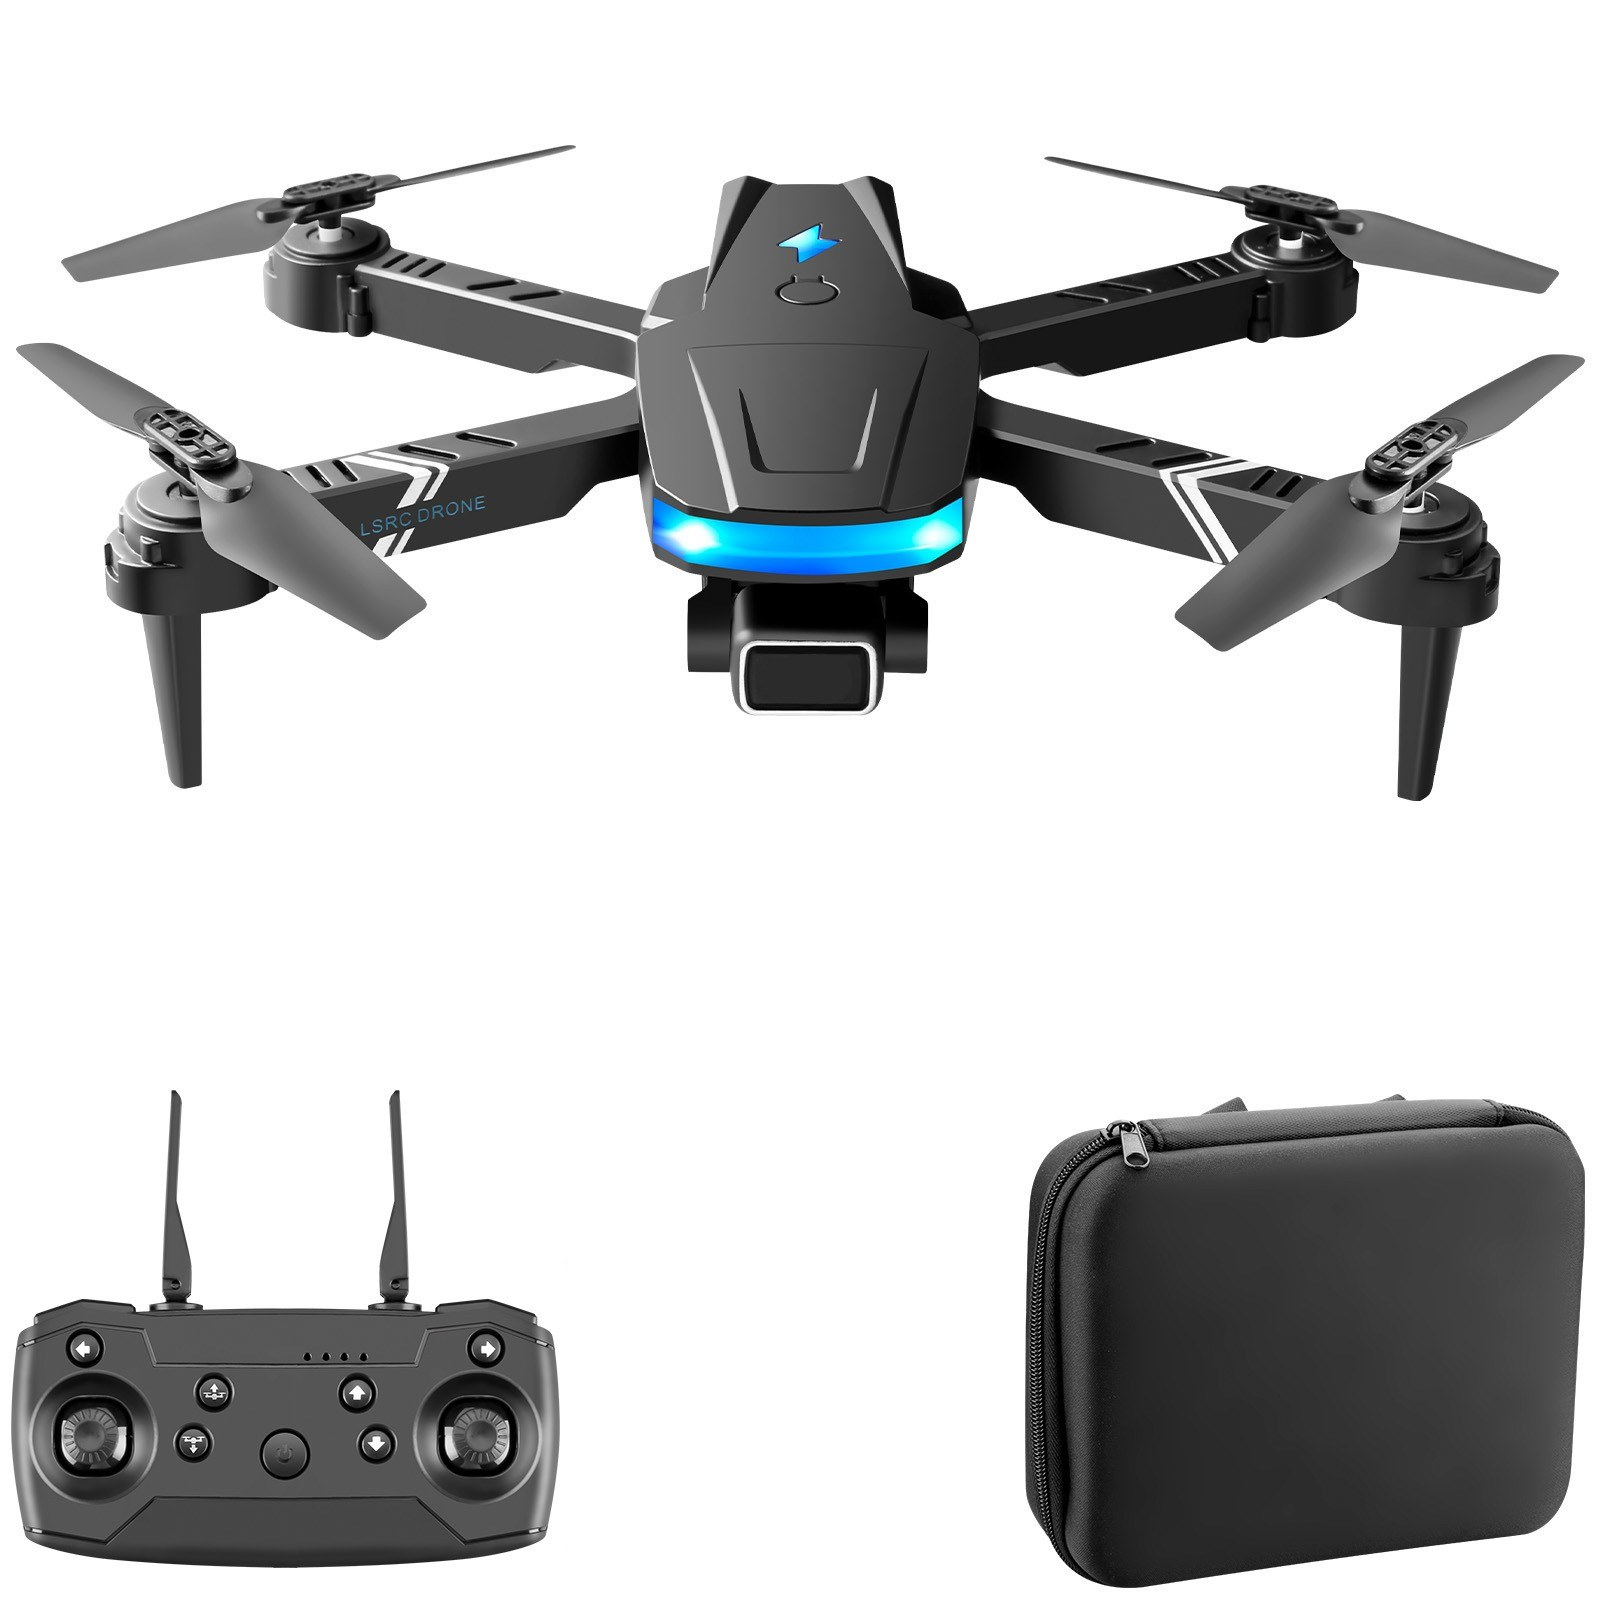 Cafago - 56% OFF LS-878 Mini Folding Altitude Hold Quadcopter RC Toy Drone,free shipping+$30.49